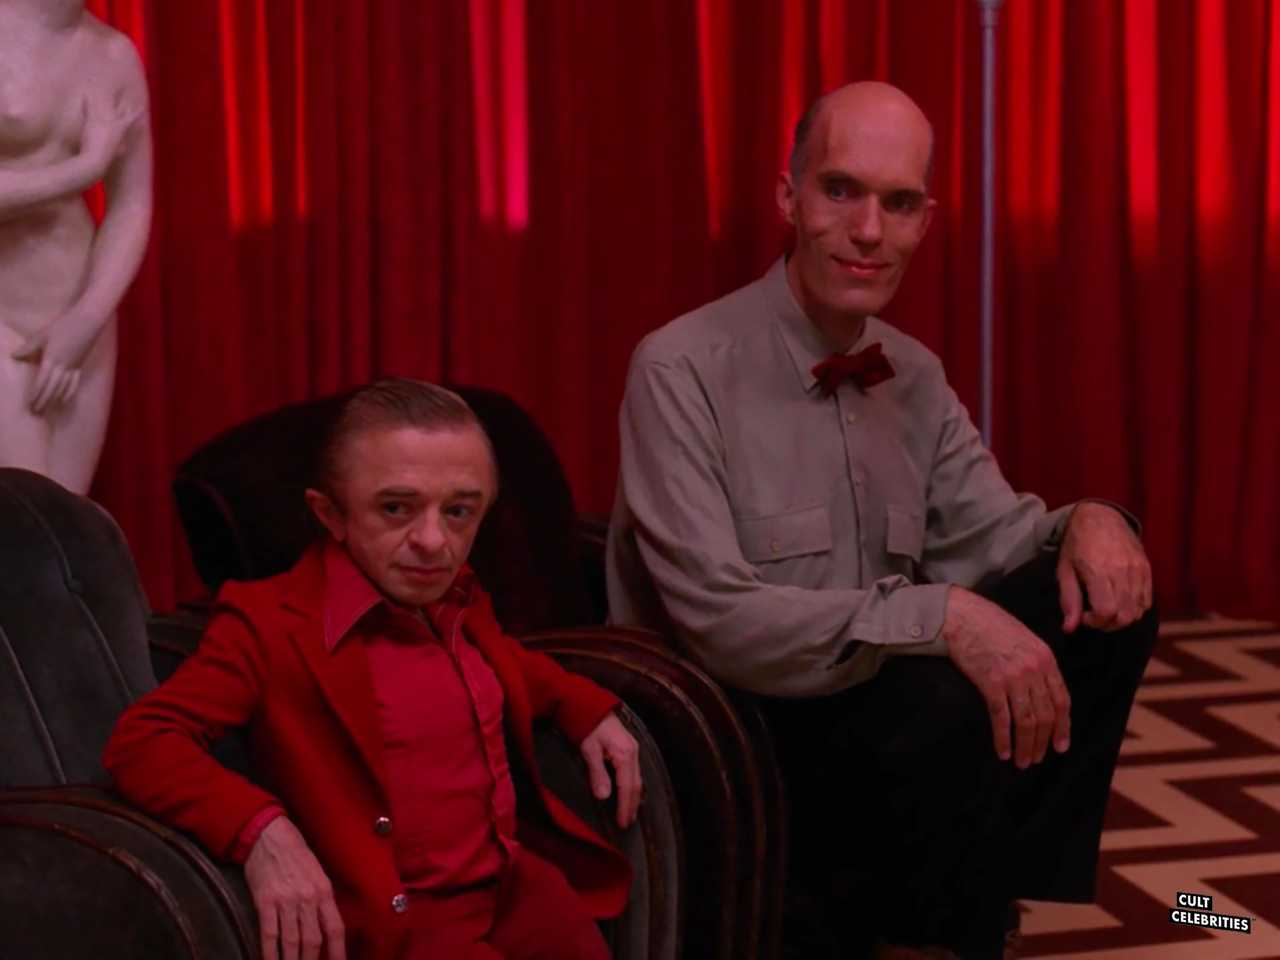 Michael J. Anderson and Carel Struycken in Twin Peaks (1990)